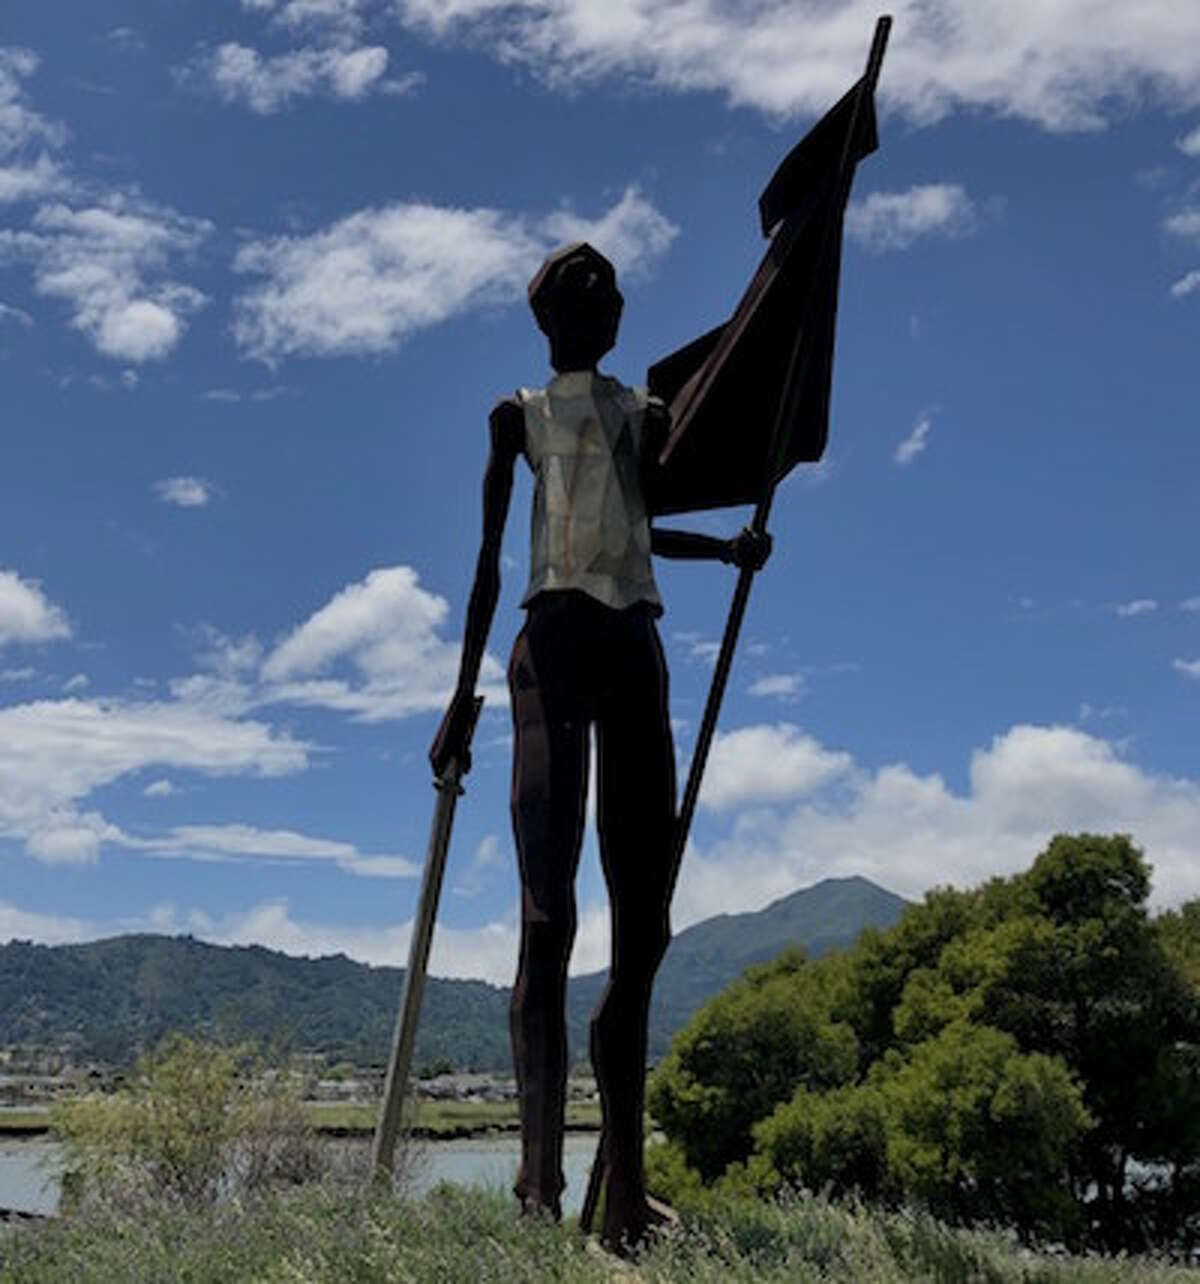 Sculpture of Sir Francis Drake landing in what is now Marin County by Dennis Patton. It stands 30 feet high next to the Larkspur Ferry Terminal.